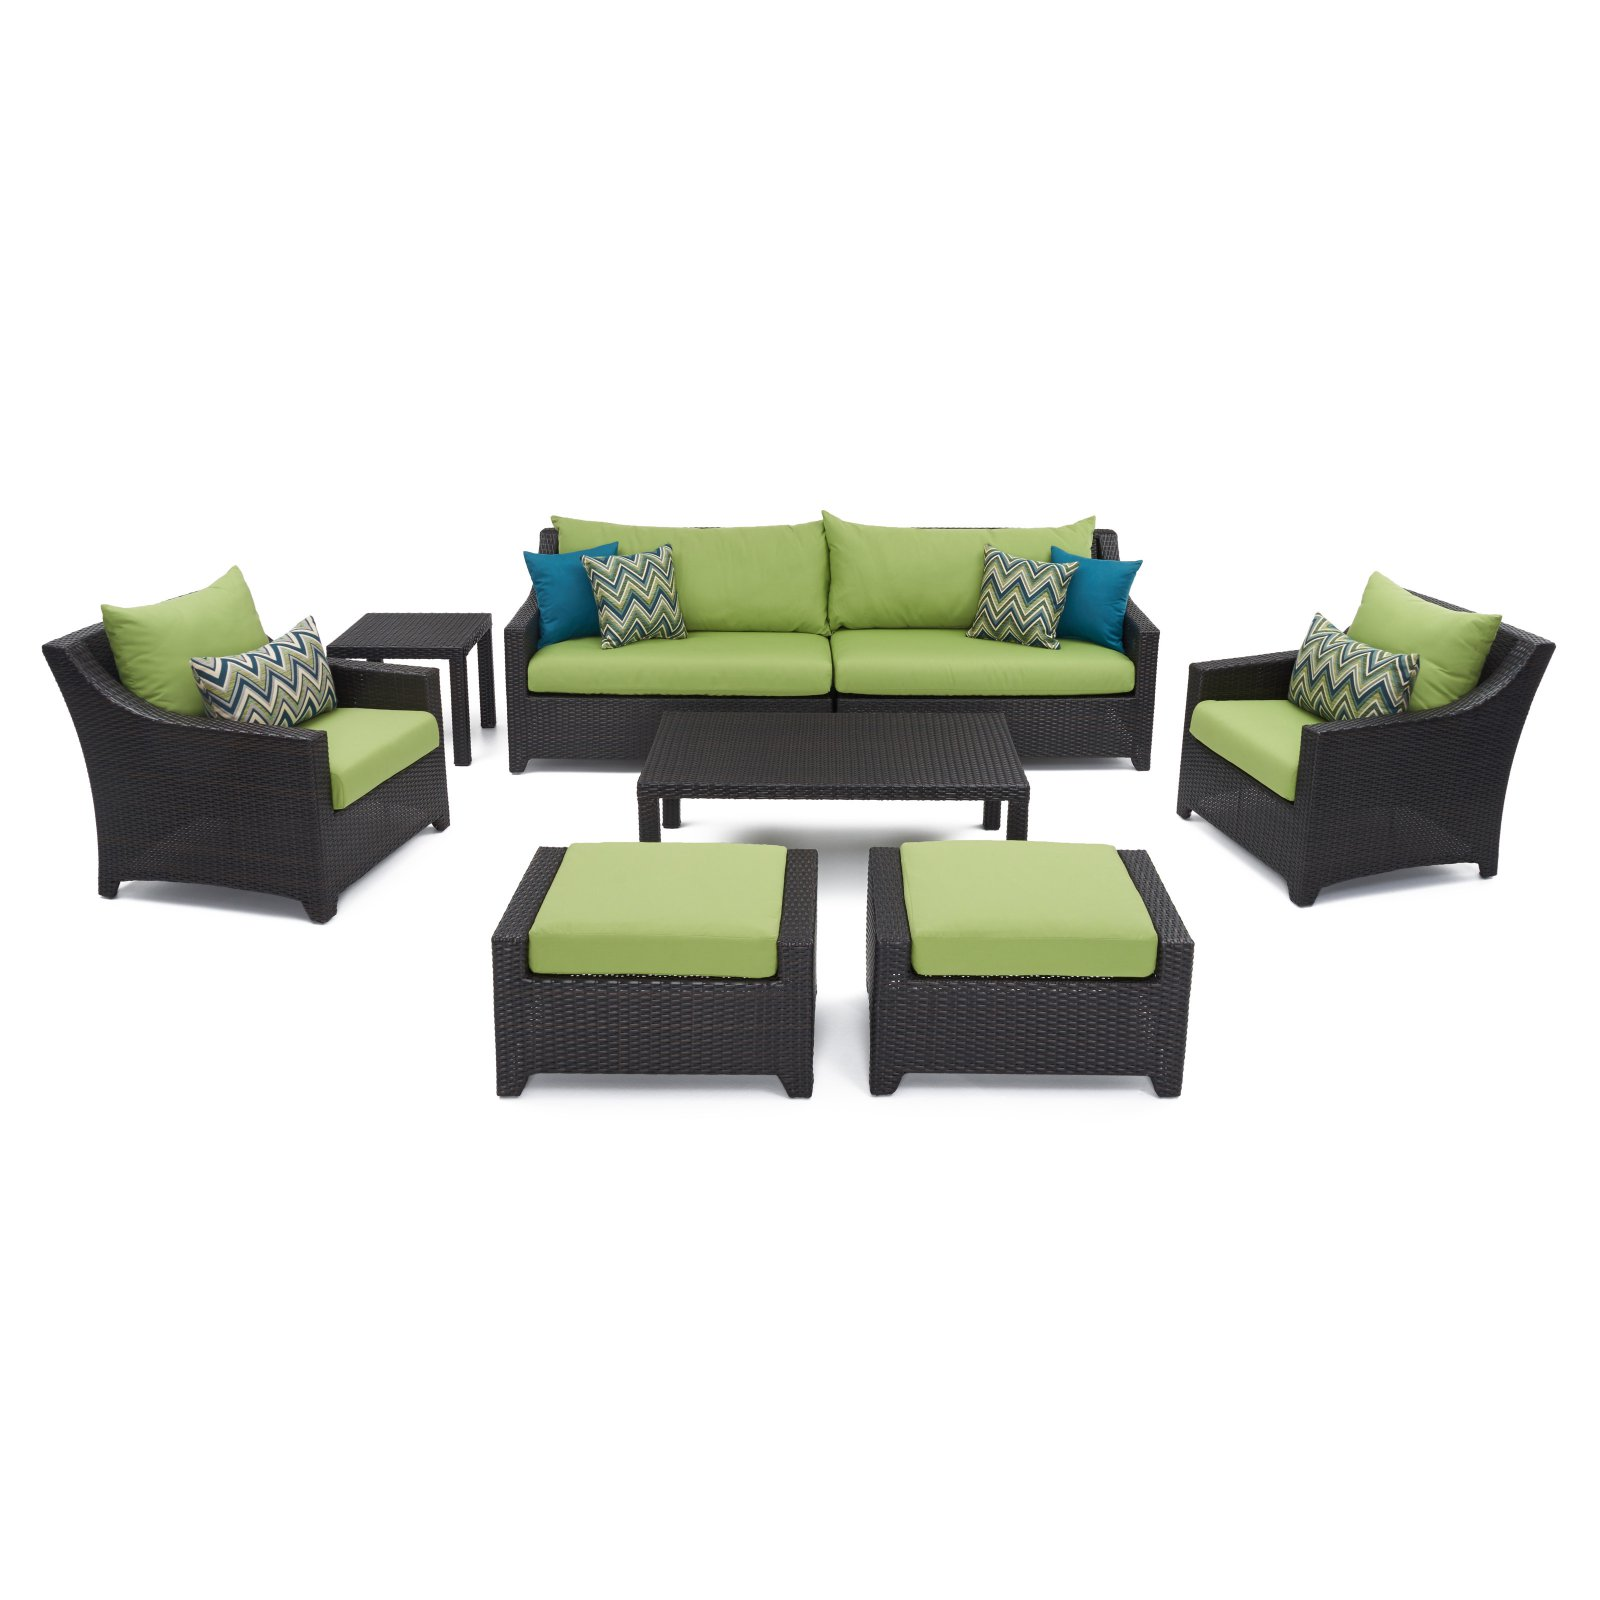 RST Brands Deco 8 Piece Sofa with Club Chair and Ottoman Set